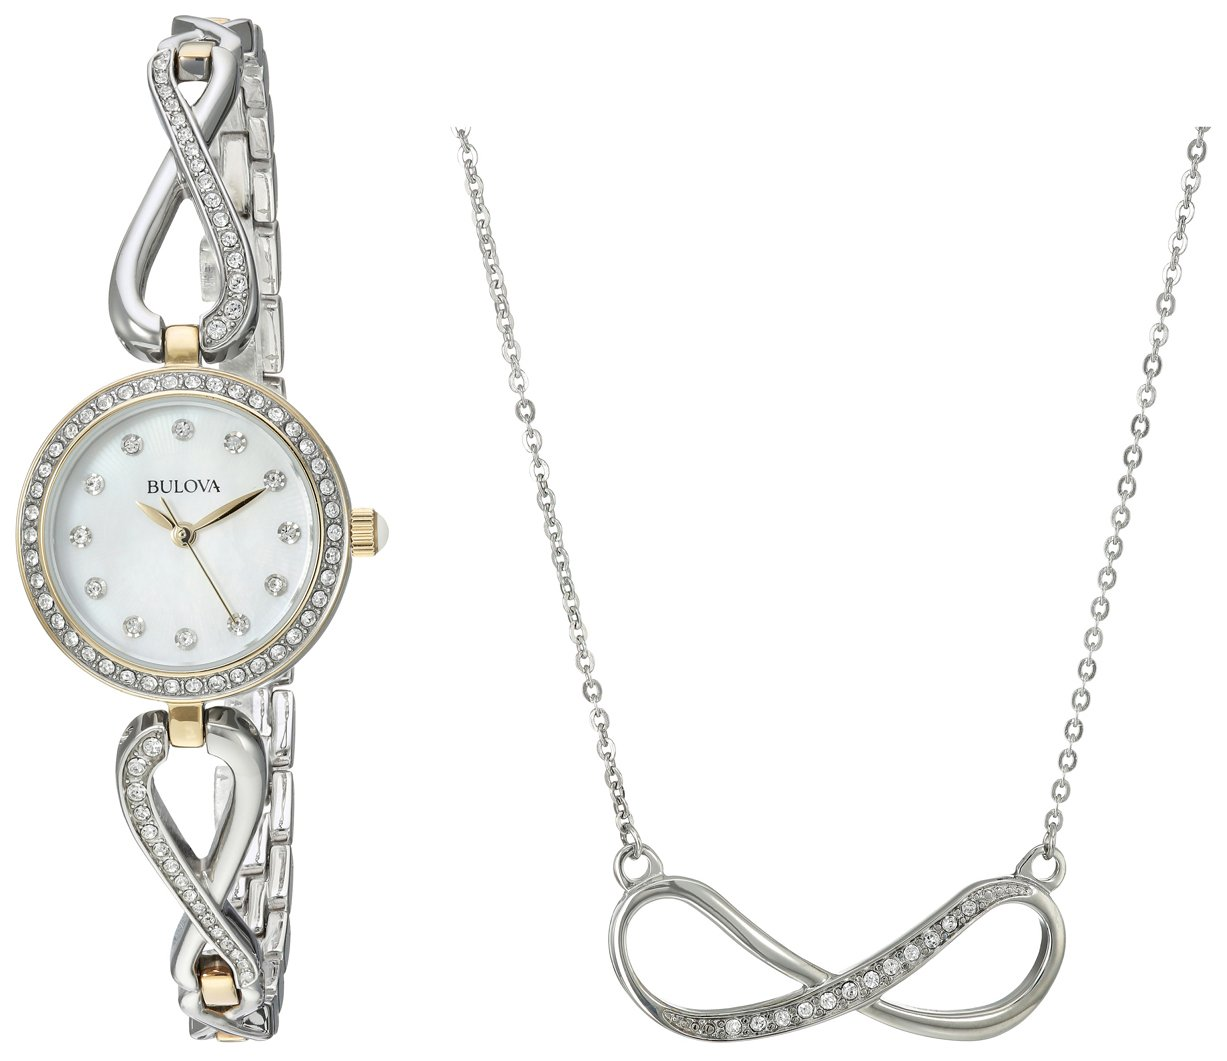 Bulova Women's Two-Tone Crystal Watch With Necklace